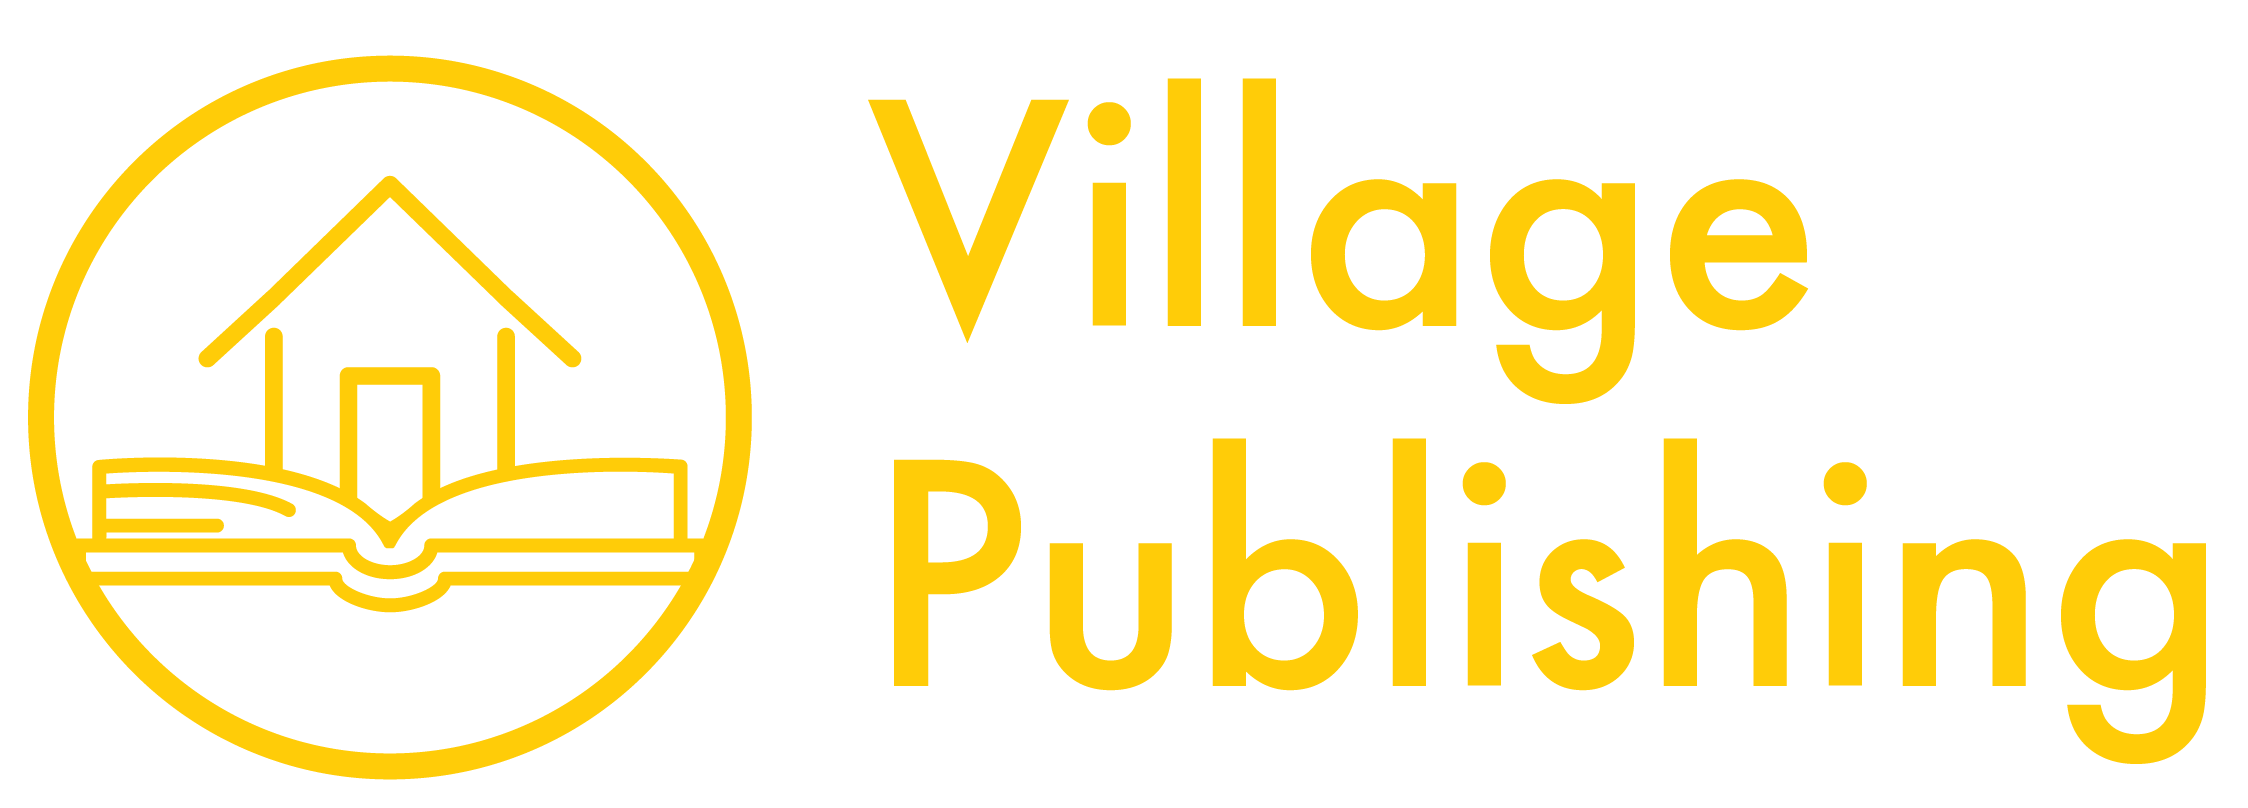 Village Publishing Logo-01.png